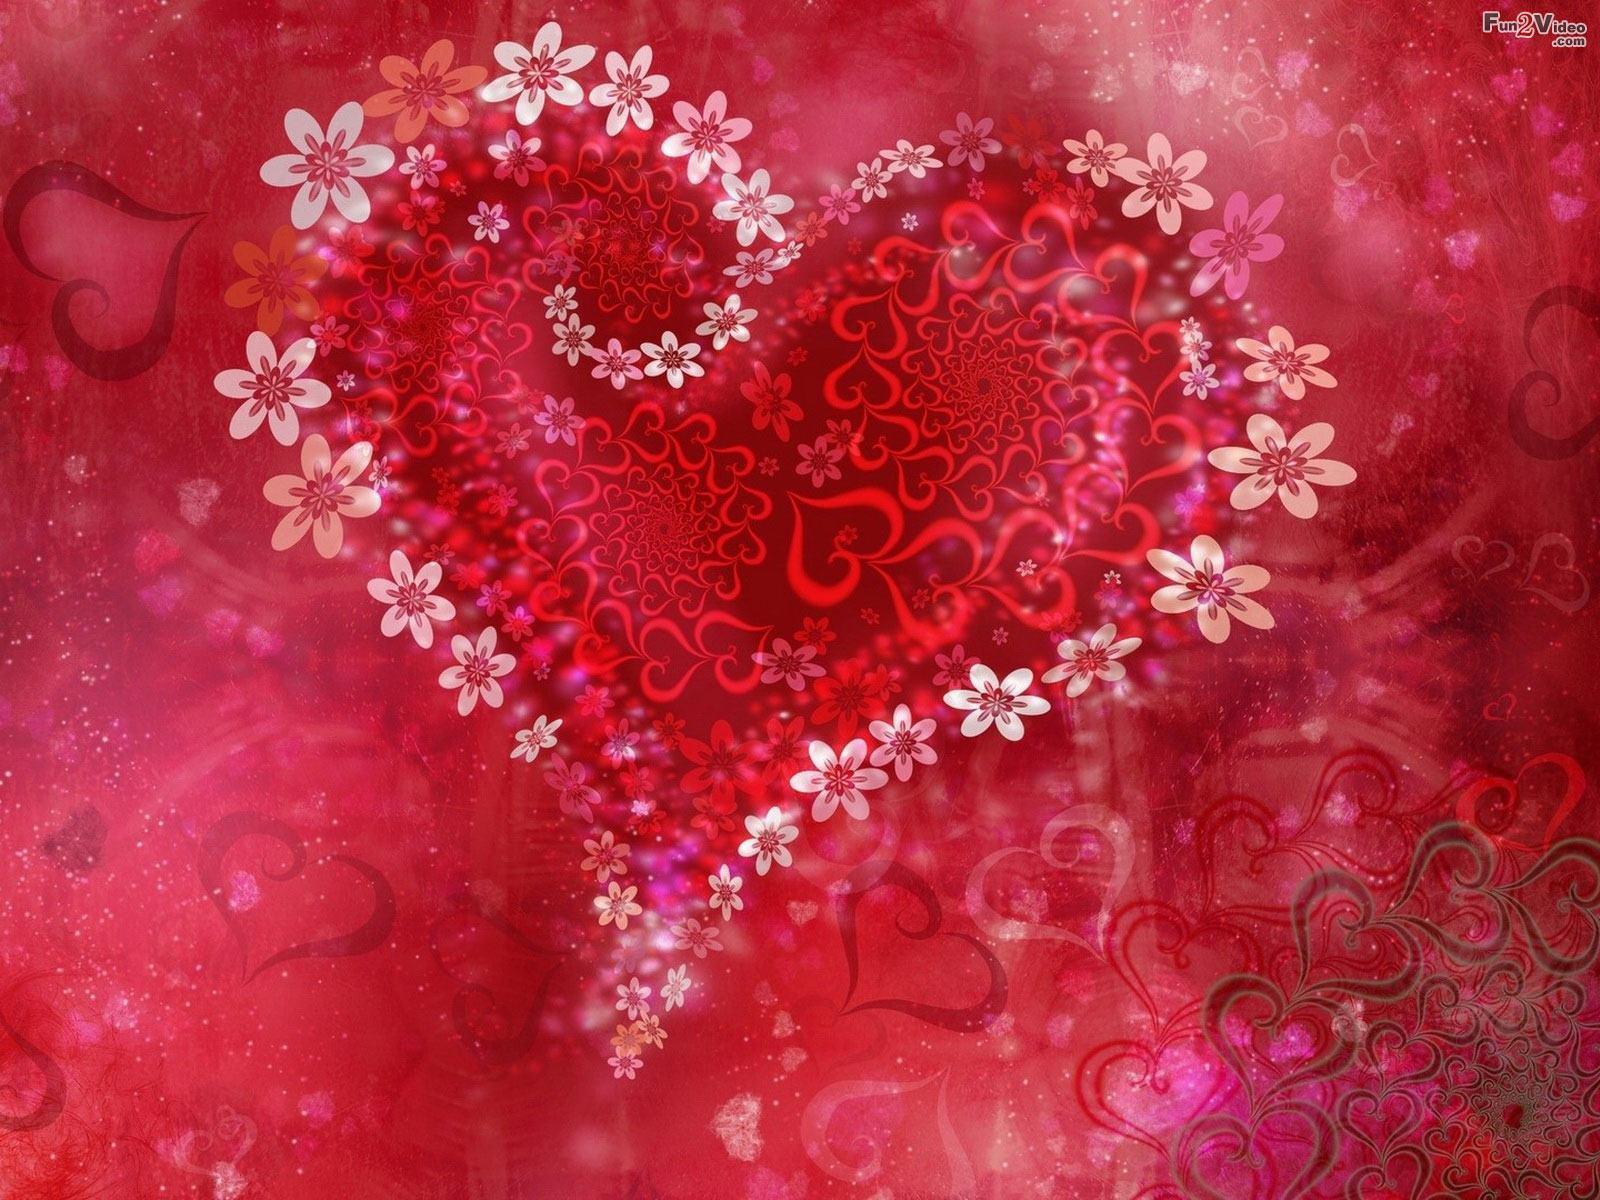 free valentine backgrounds desktop - wallpaper cave